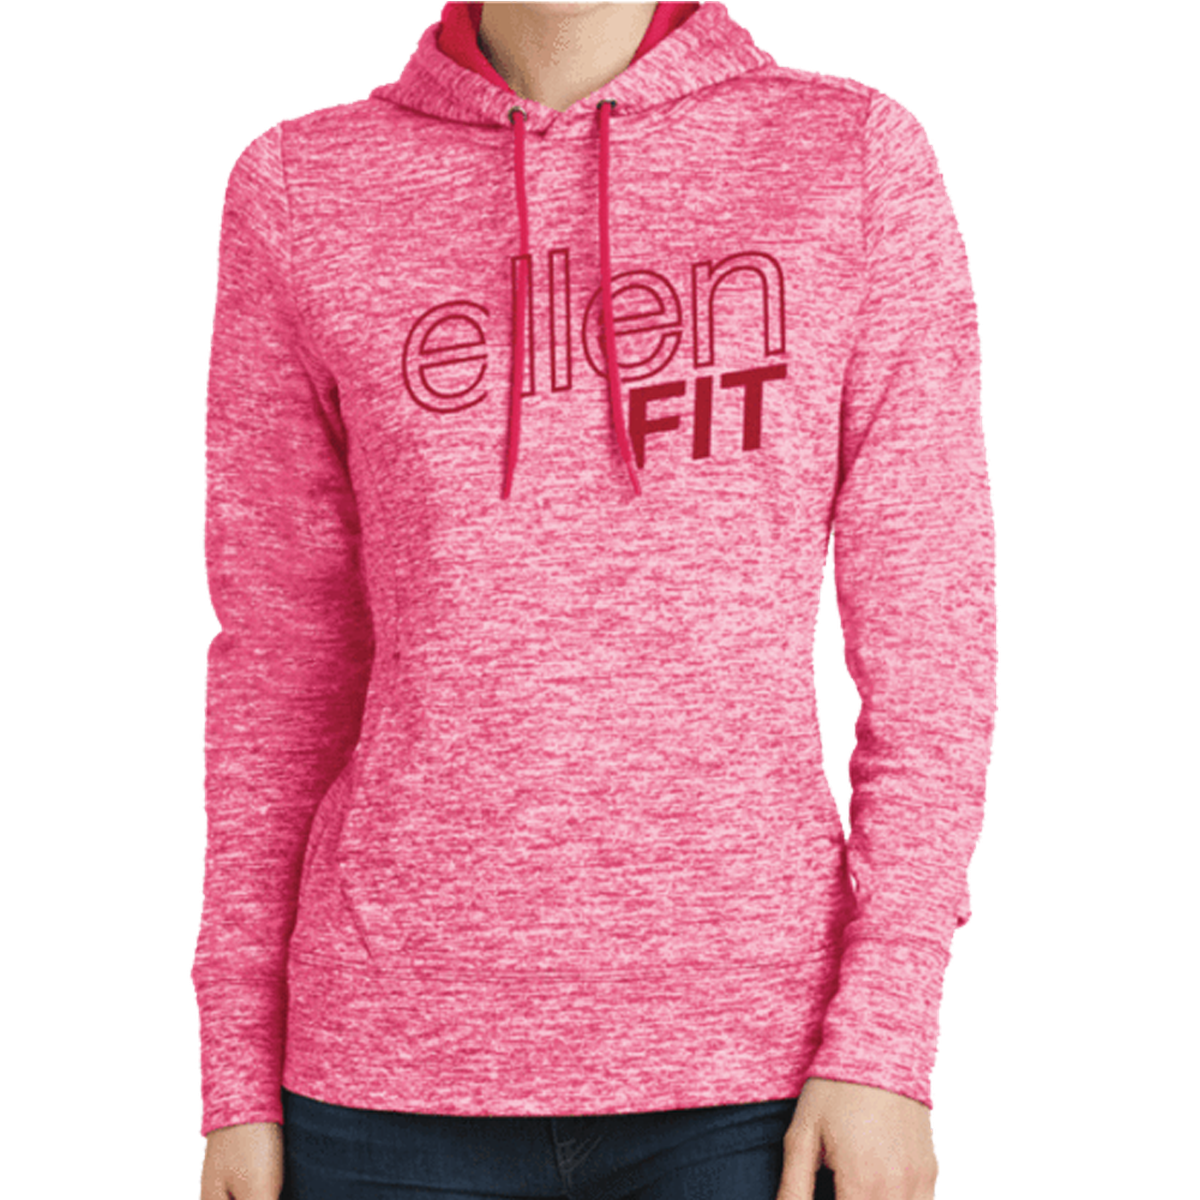 ellen Degeneres clothes fit collection hoodie pink